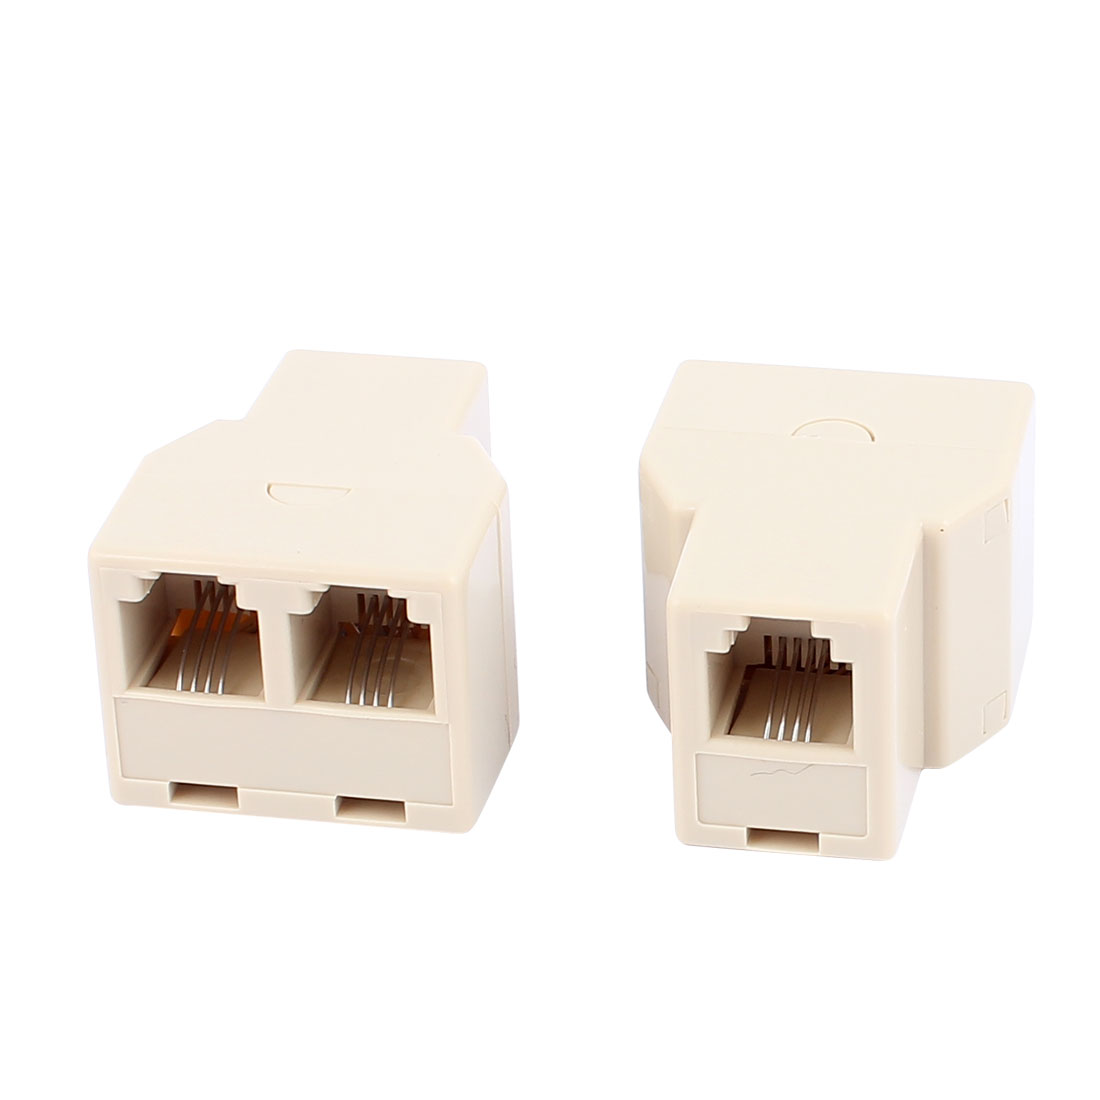 2Pcs 3 Way RJ11 6P4C Telephone Extension Connector Cable Line Adapter Converters Splitter